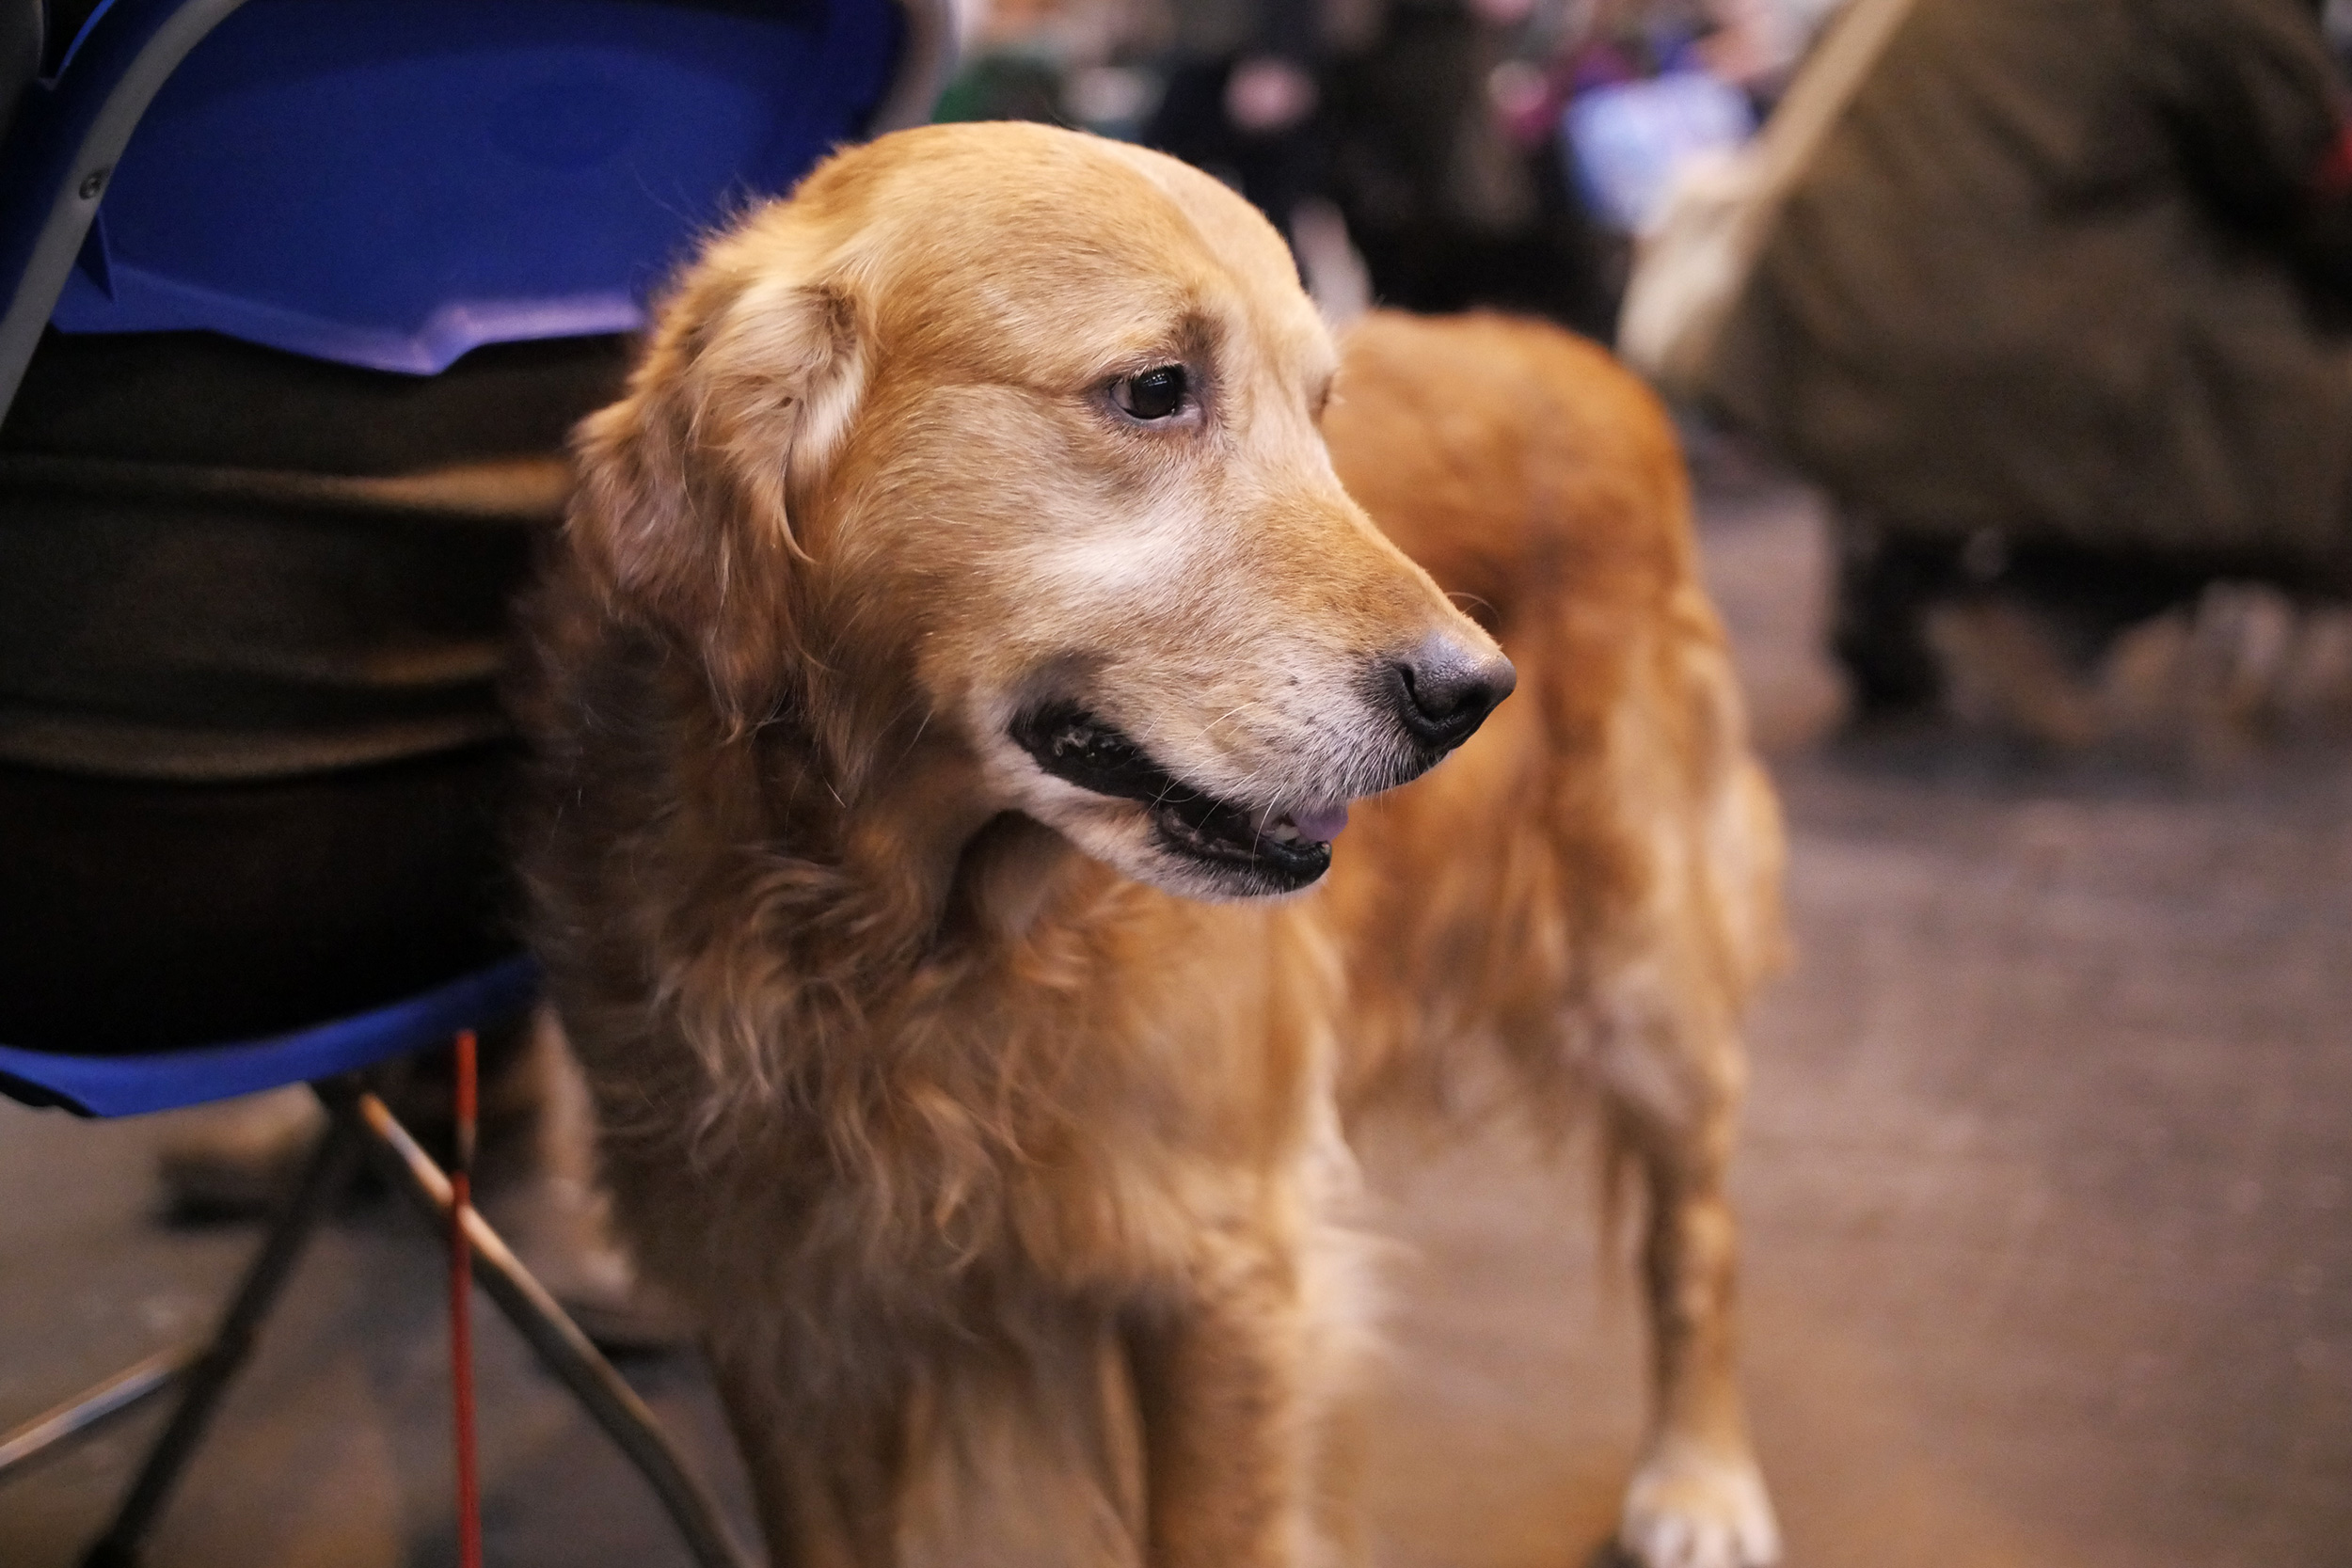 Amazingly cute golden retriever posing for the camera near one of the show rings.